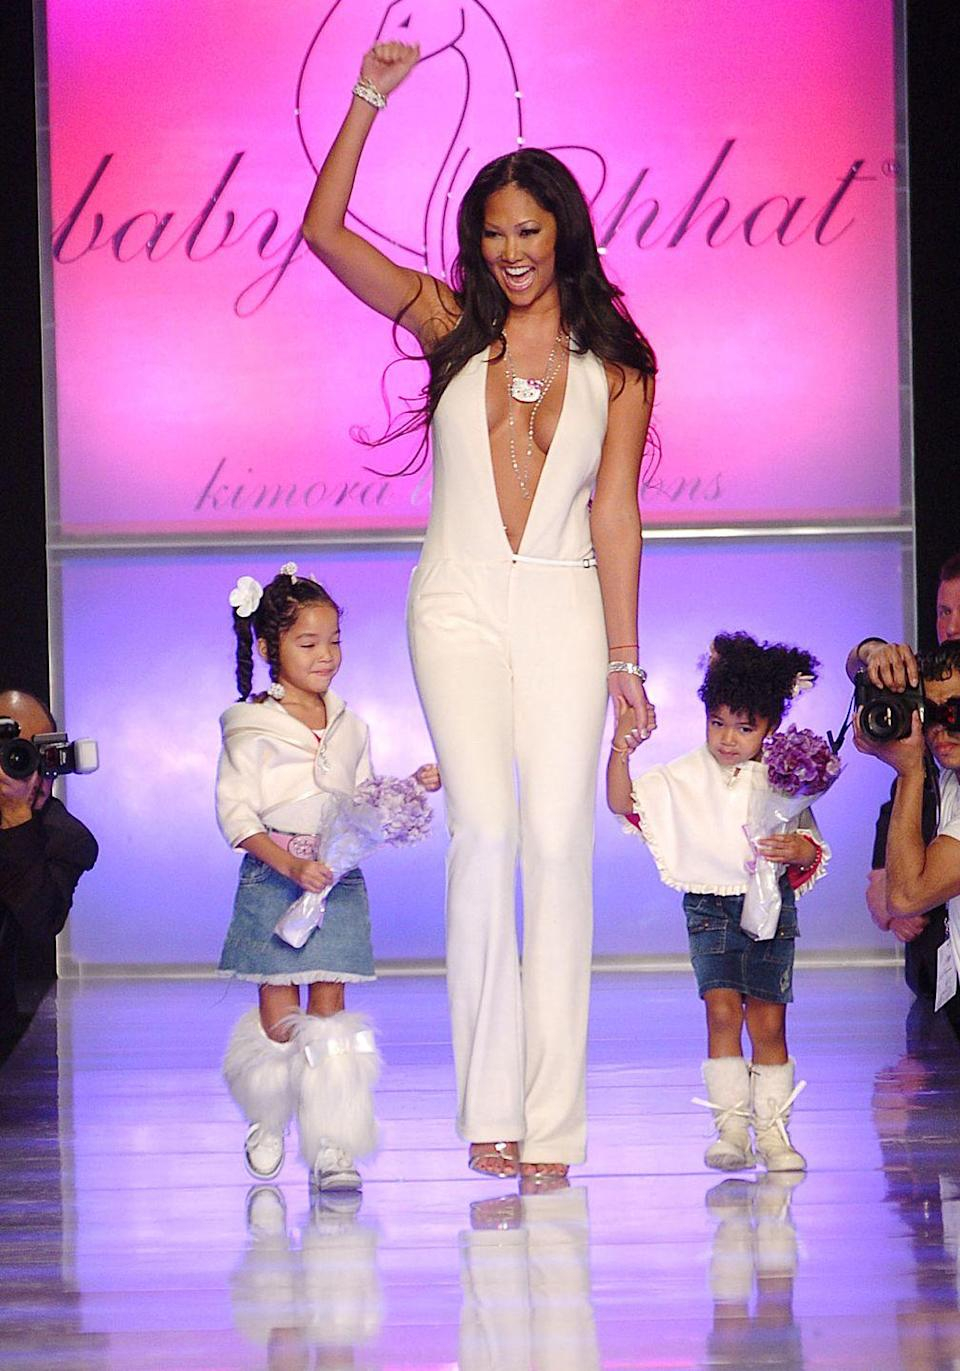 <p>Kimora Lee Simmons brought two very special guests with her for the close of her Baby Phat show in 2005, her daughters Ming Lee and Aoki Lee Simmons. Their adorable outfits only made the moment more memorable, we're sure.</p>